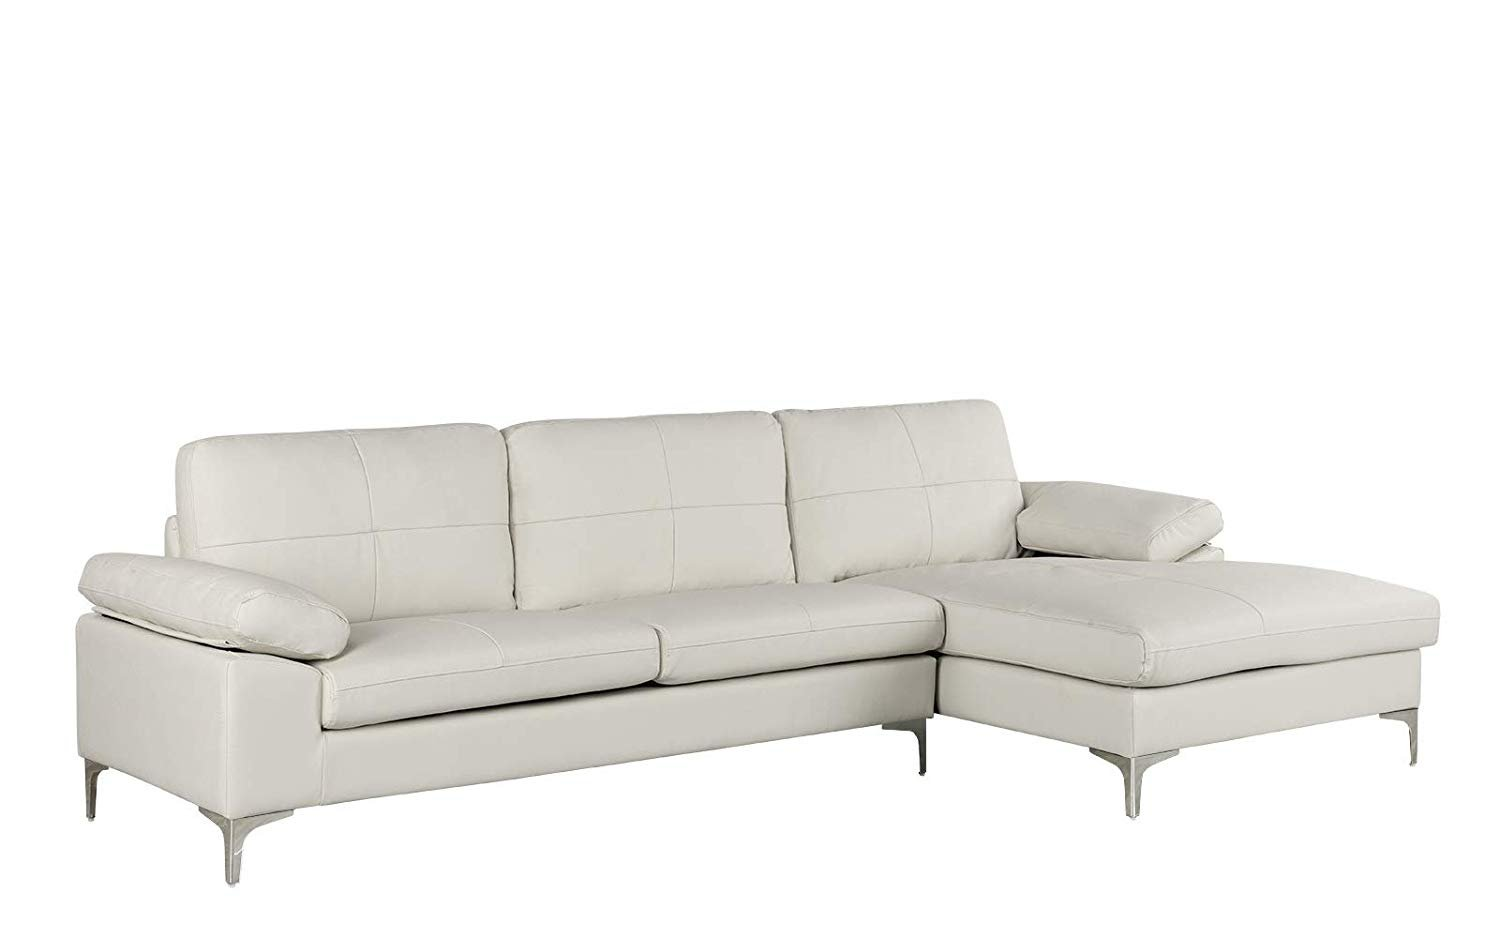 Details about Leather Sectional Sofa, L-Shape Couch with Chaise, 108.7\